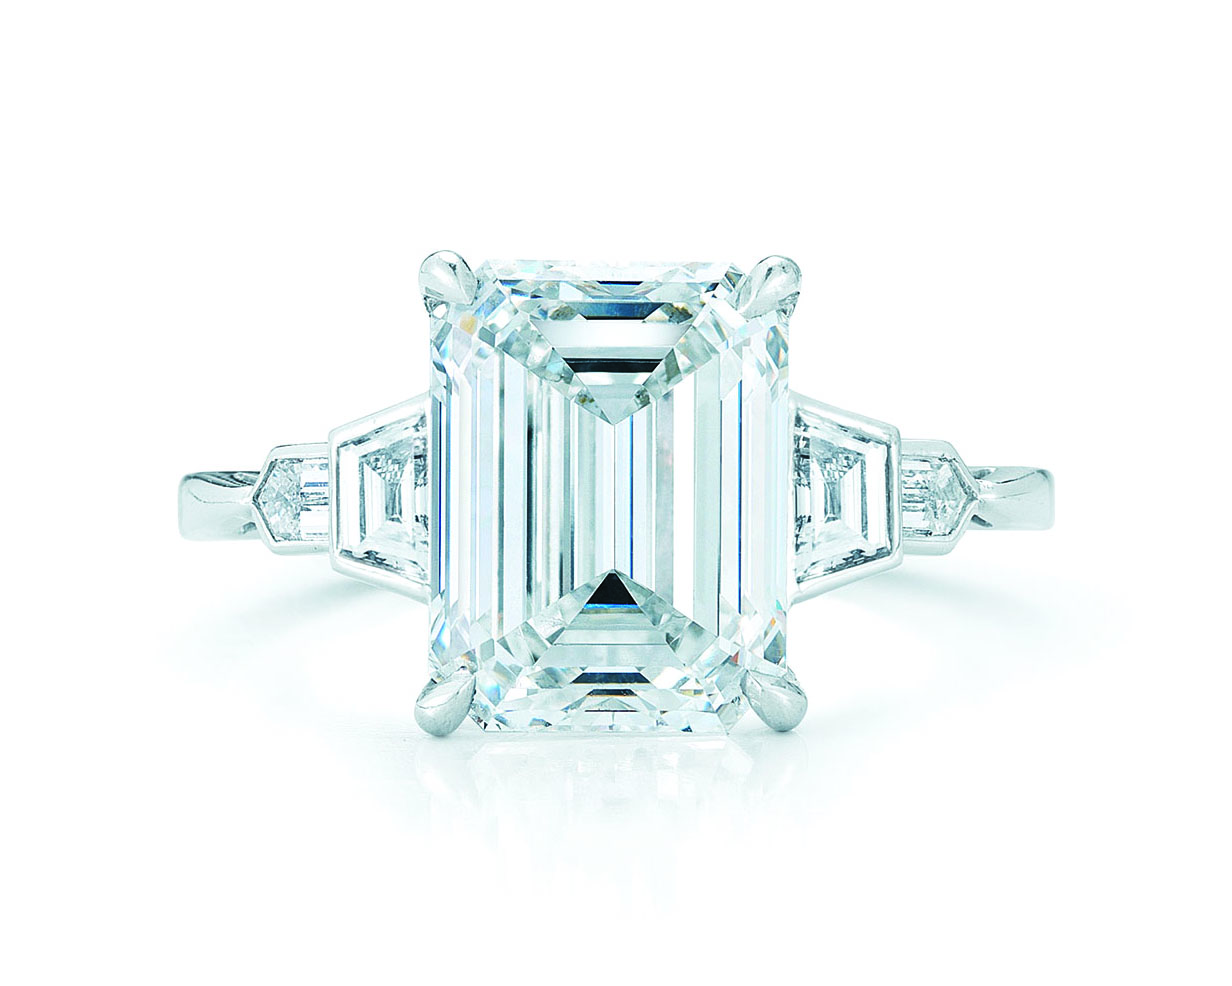 Emerald cut diamond ring with trapezoid side stones in art deco style with a white gold band